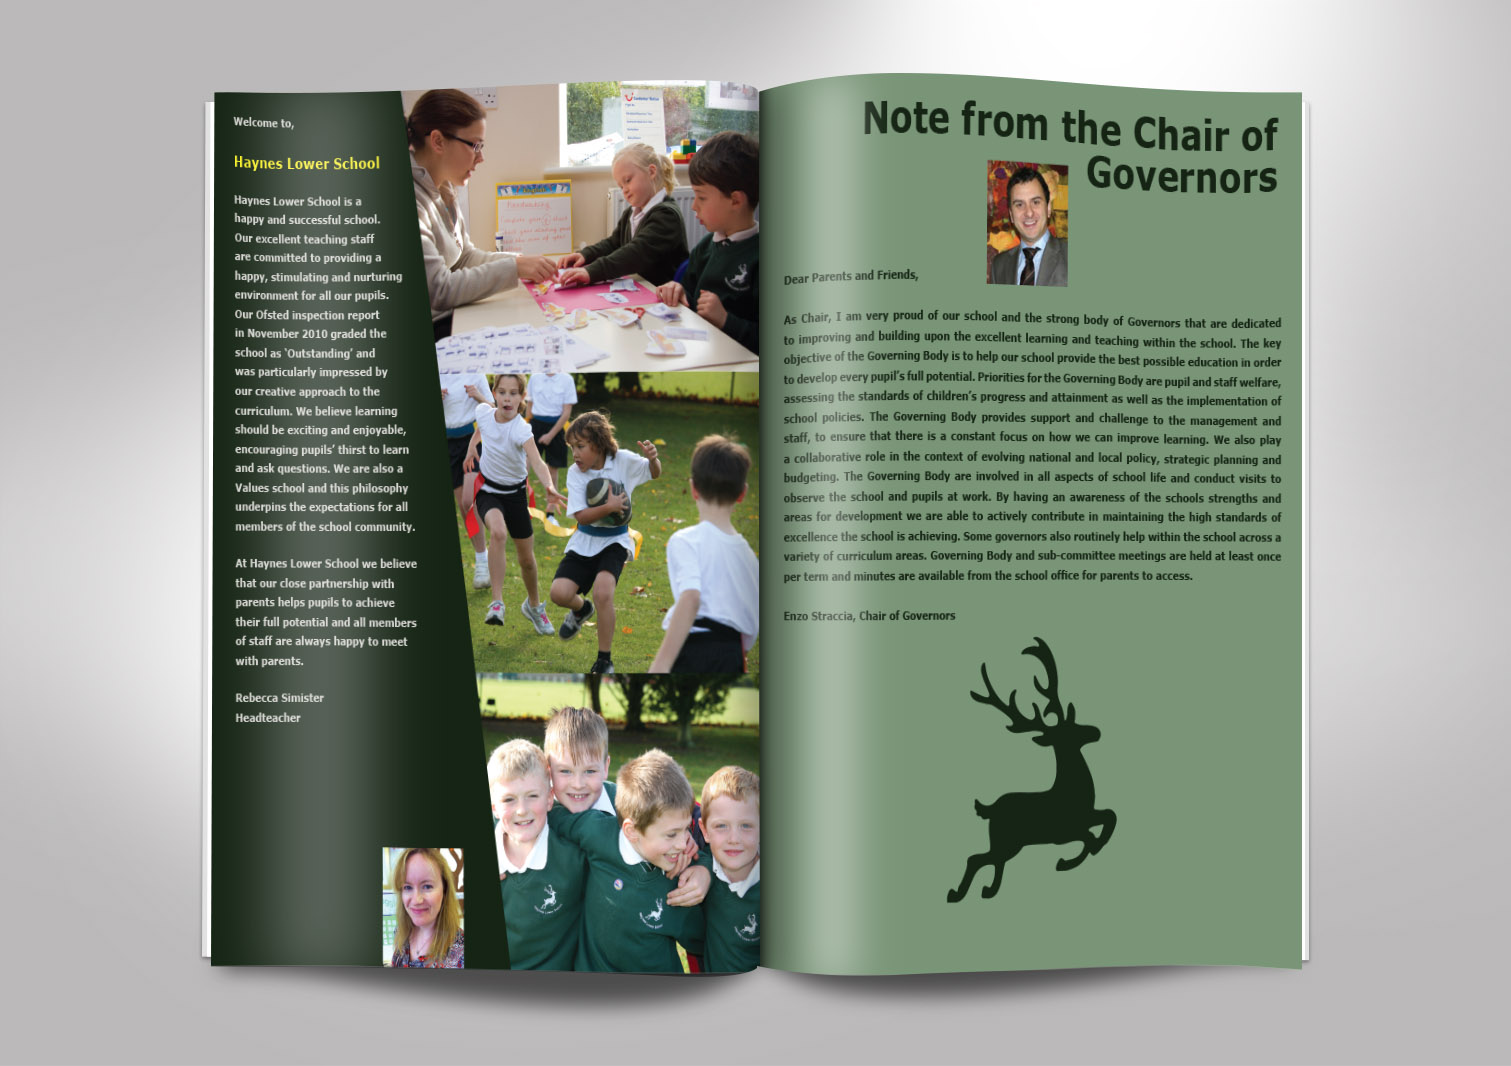 Haynes Lower School Prospectus Inside Pages 2 and 3